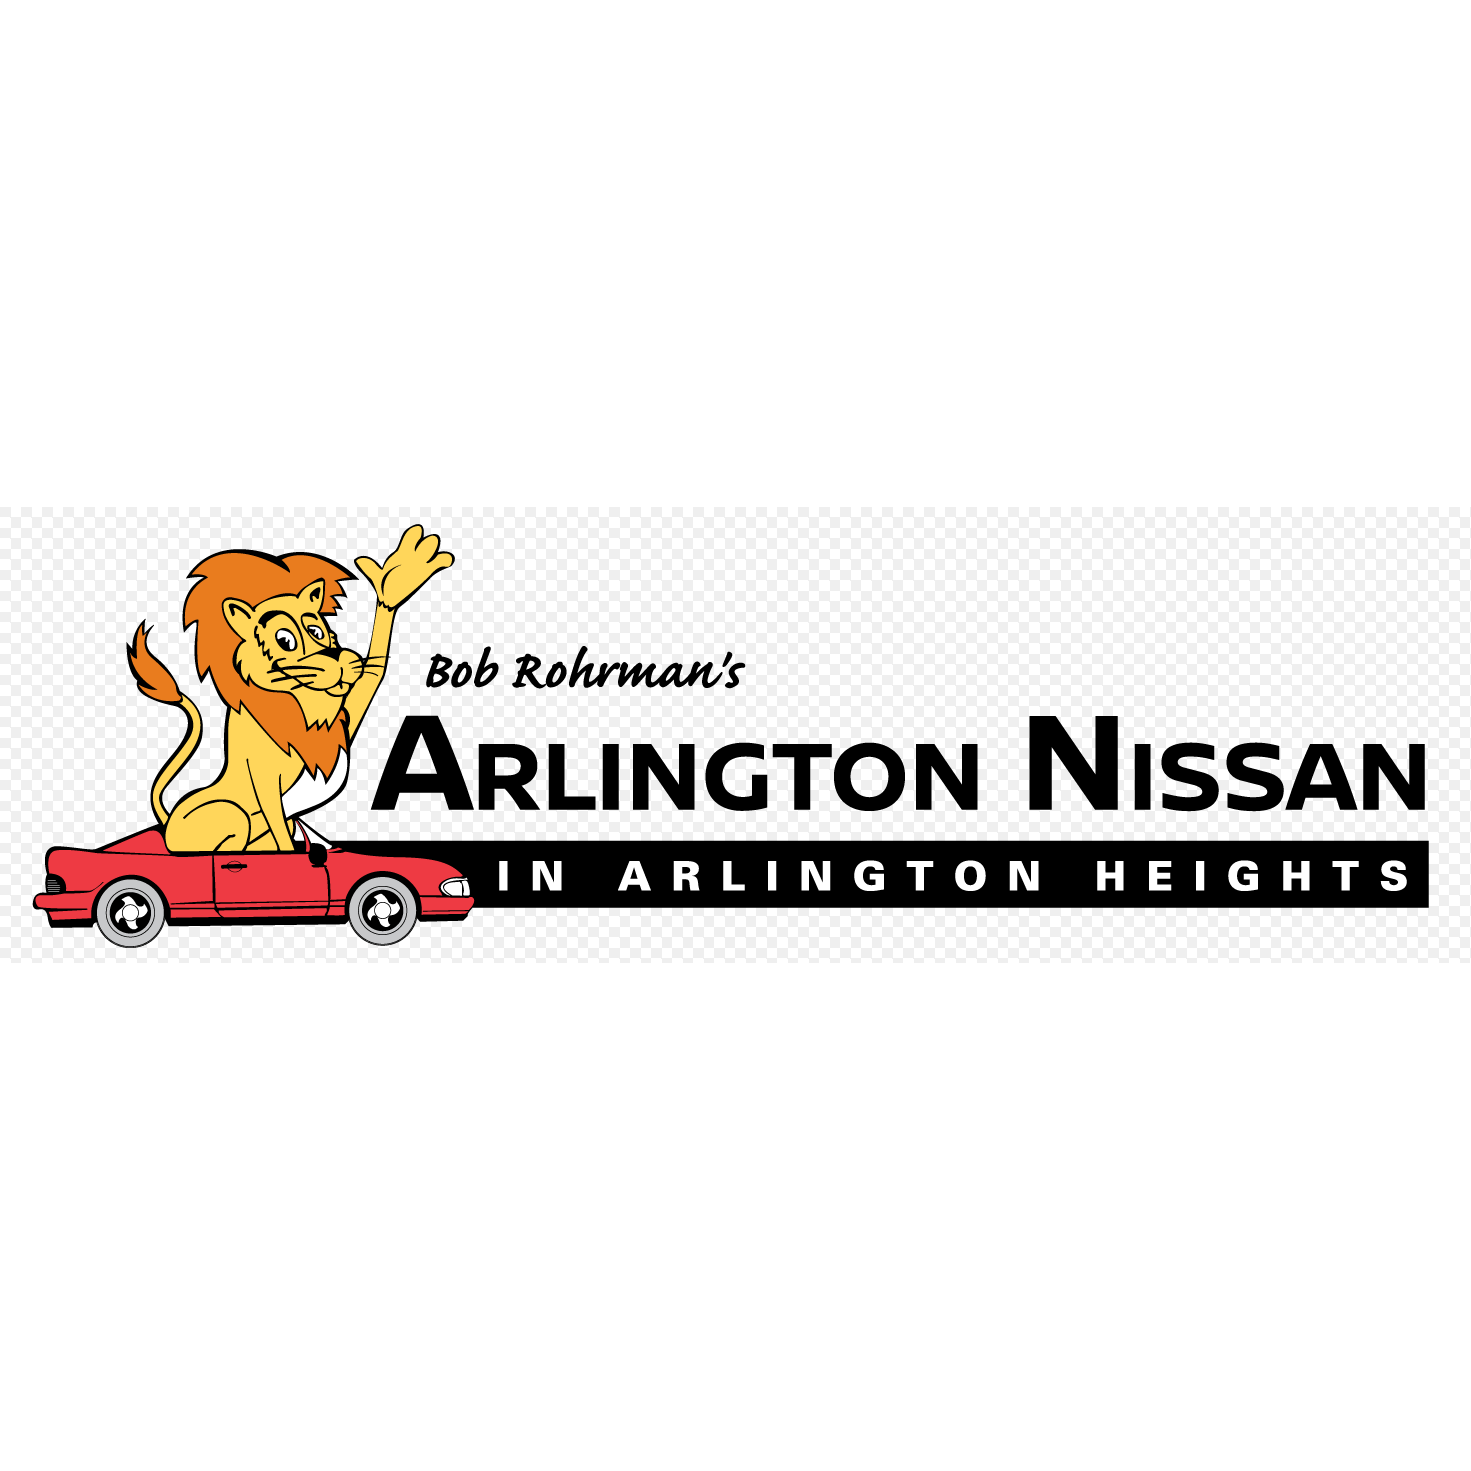 Arlington Nissan in Arlington Heights image 1